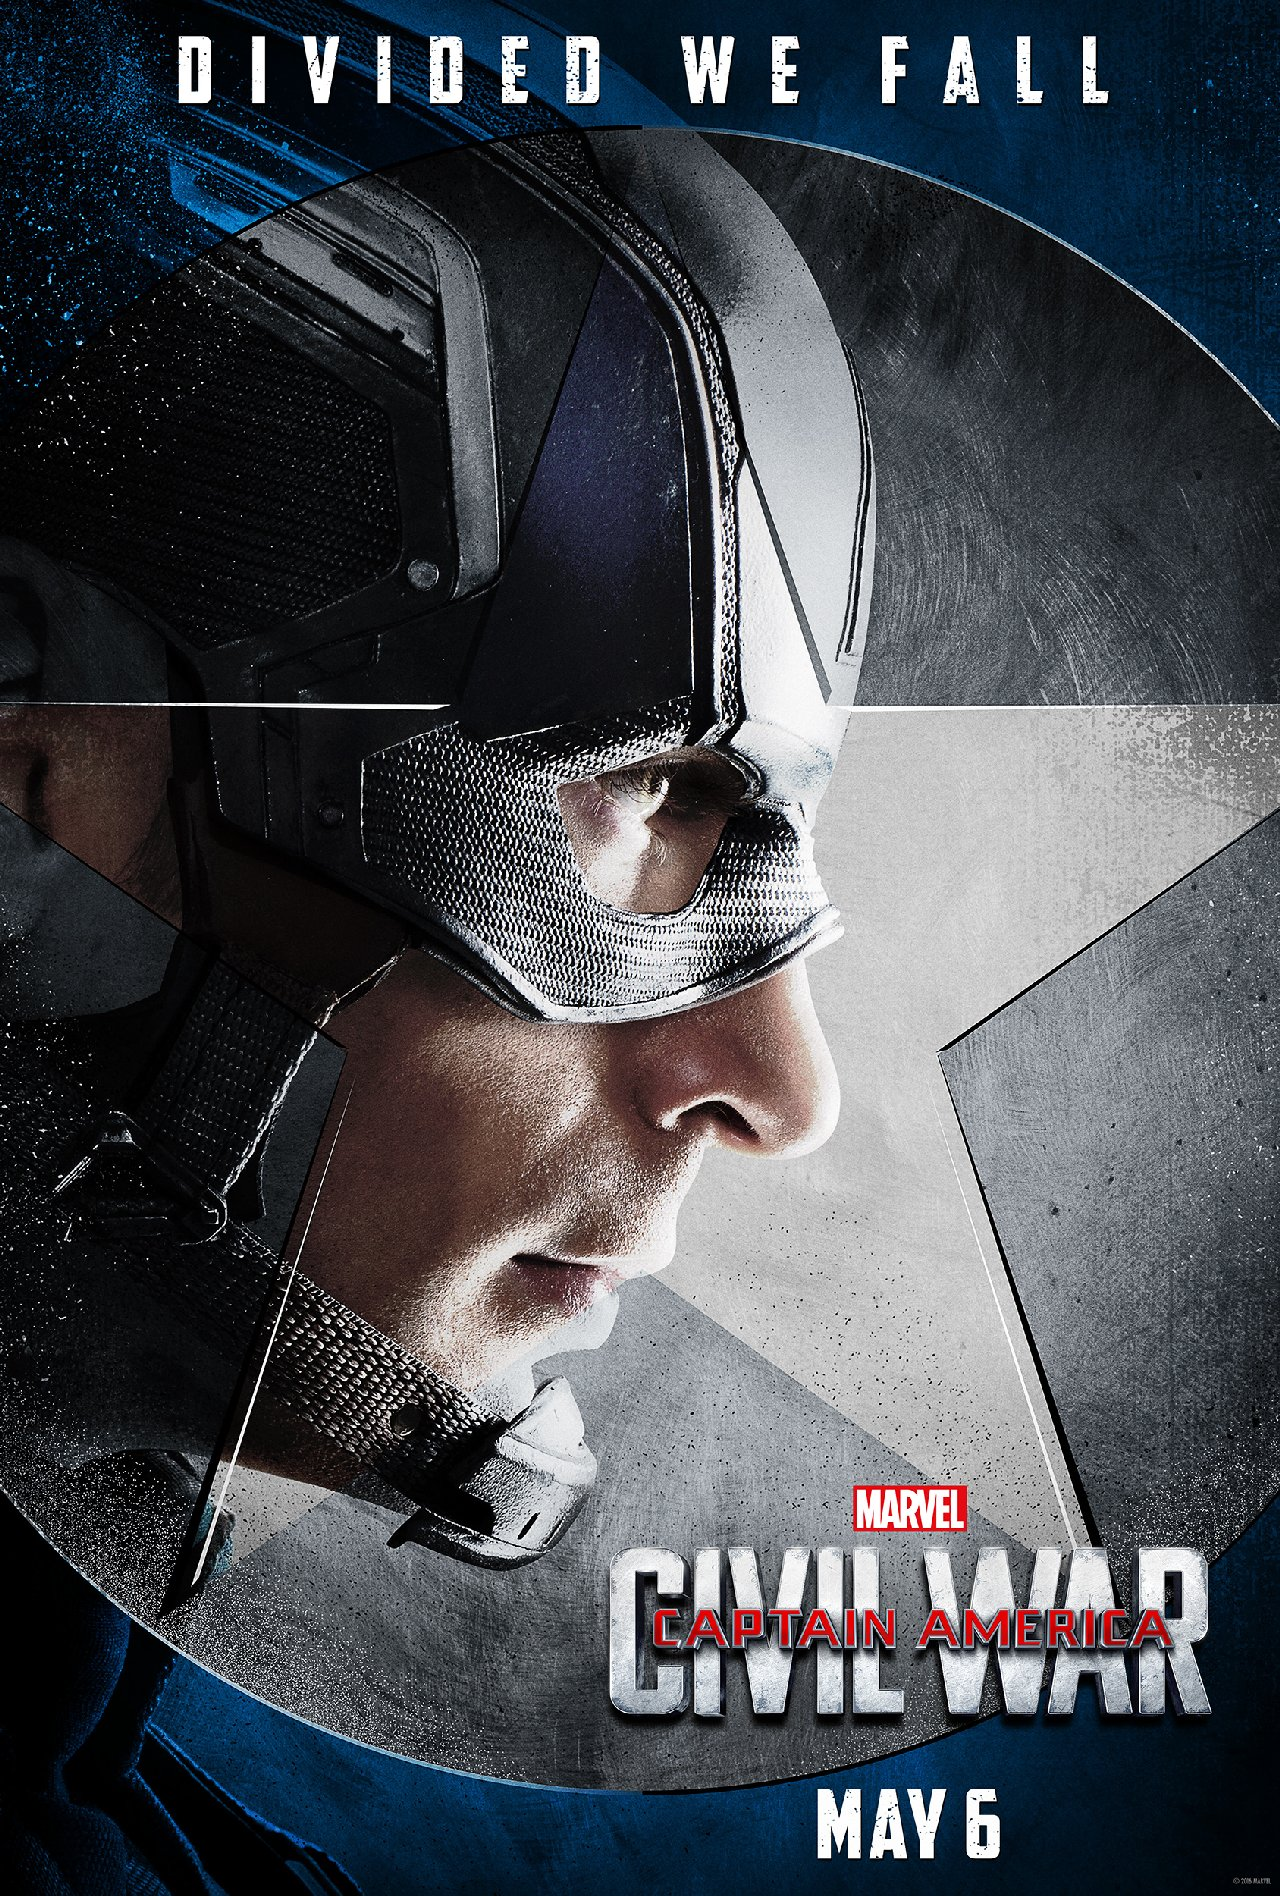 Captain America: Civil War Character Posters Champion Team Cap, New Action Shots Emerge